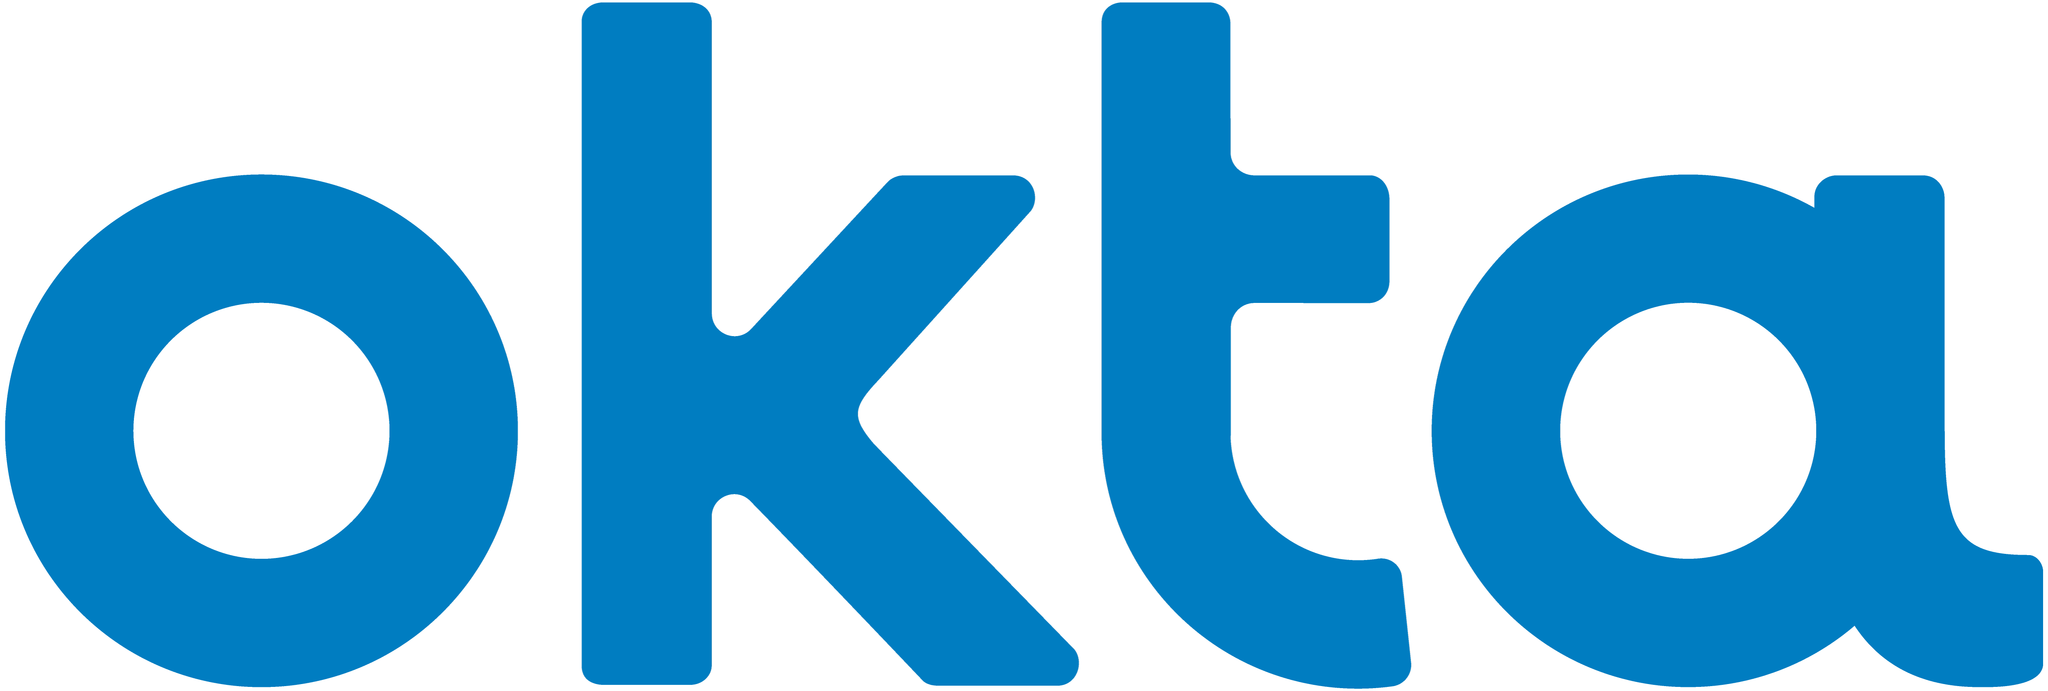 Okta Updates Partner Connect Program With New Sales Engagement and Marketing Resources